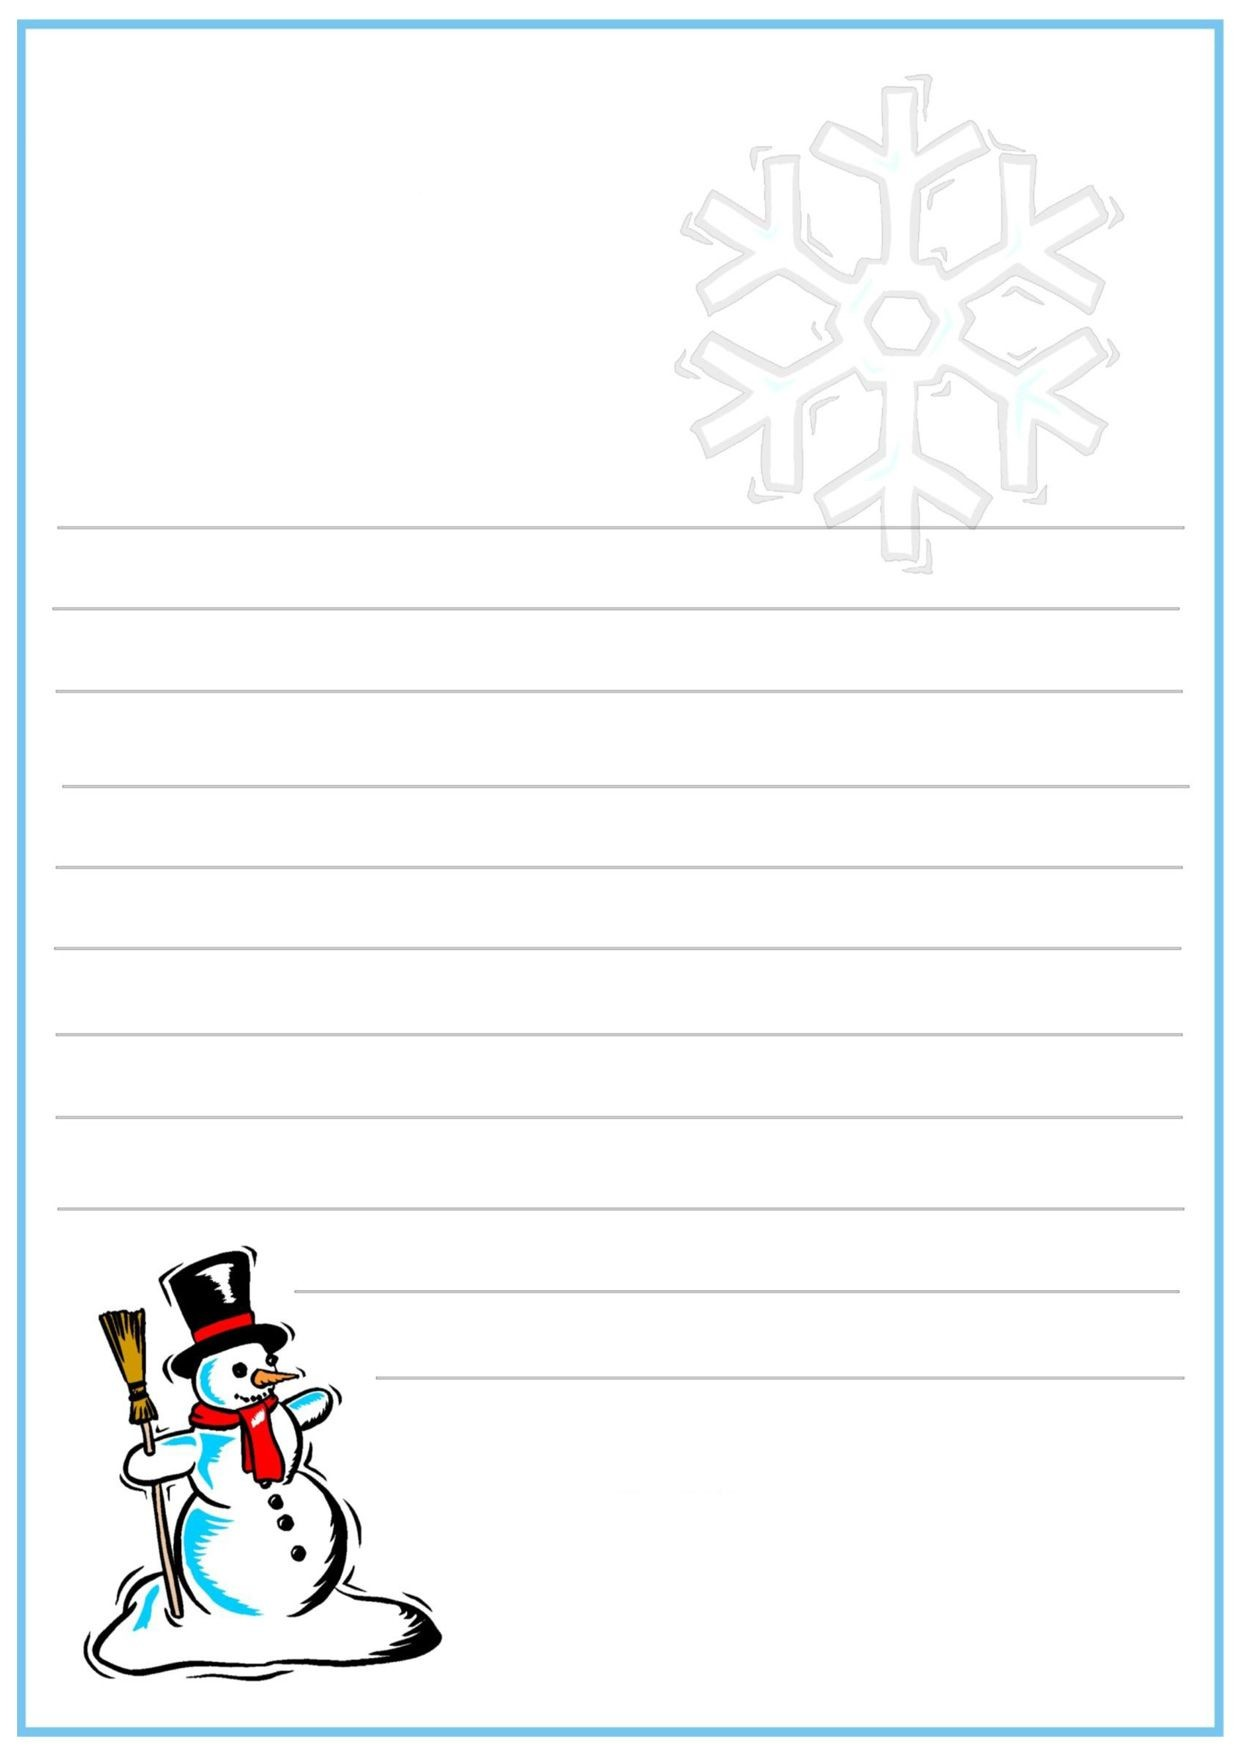 Lettera a Babbo Natale versione 12 da stampare gratis Writing Papers Mascarpone December Daily